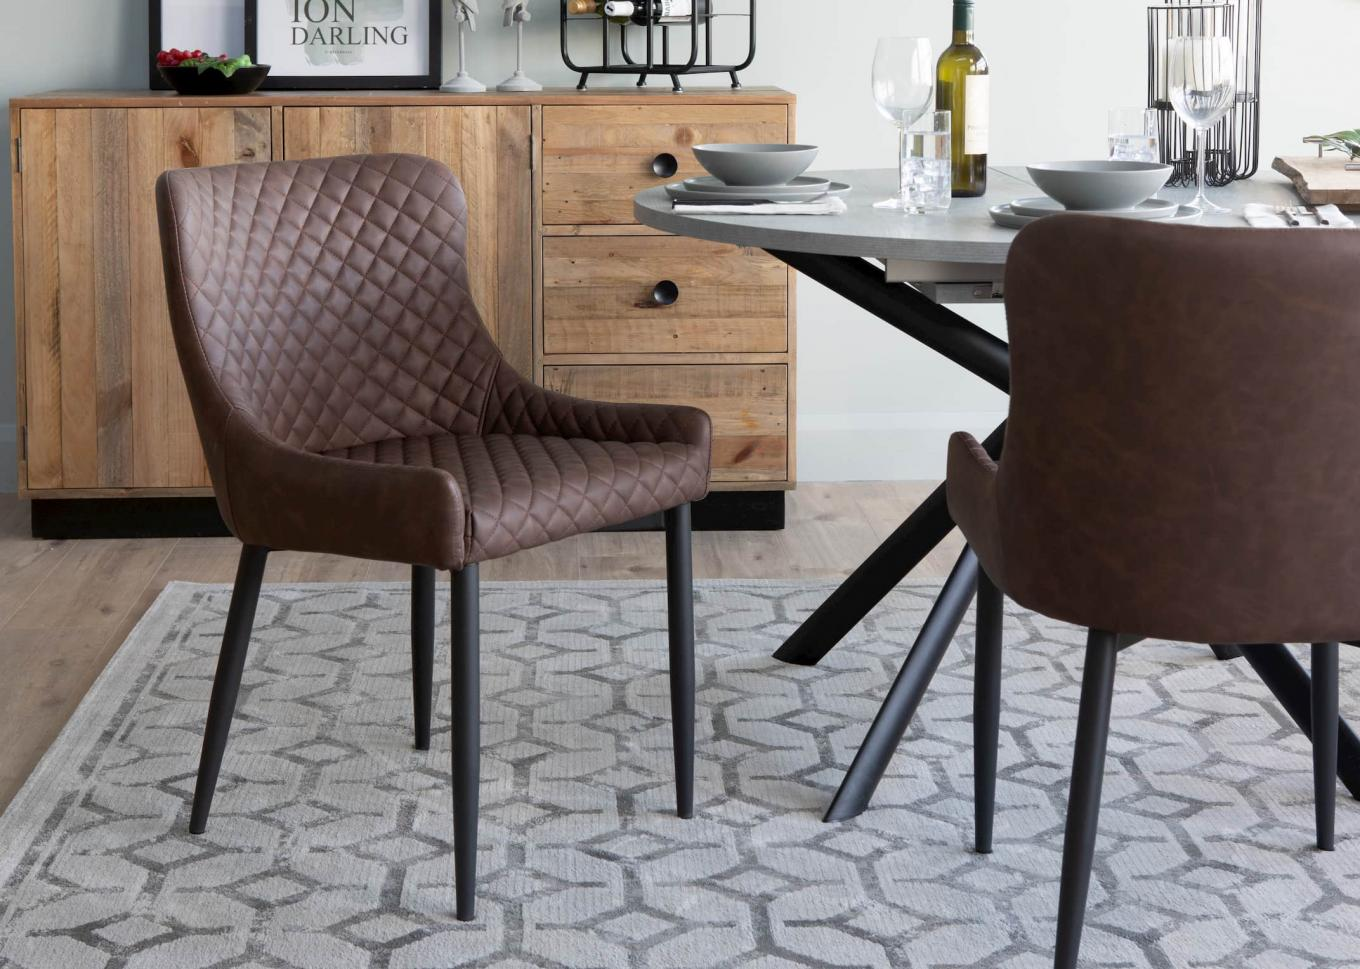 Ottowa Brown Faux Leather Chair Lookbook